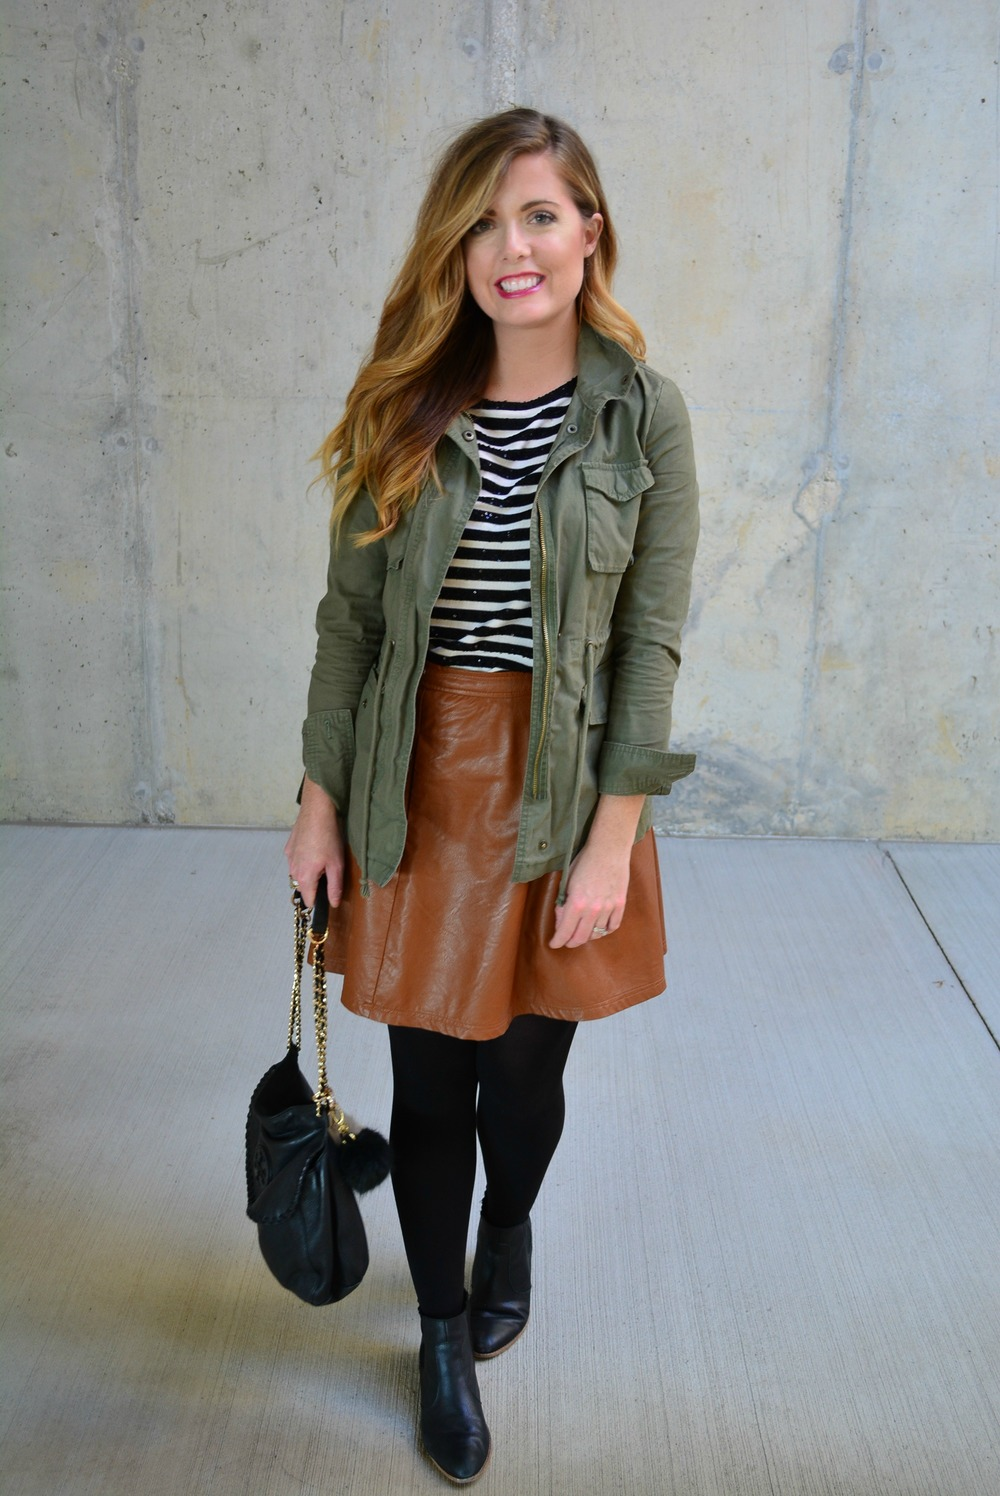 Cargo jacket with stripe tee and brown leather skirt for fall on Sophisticaited.com